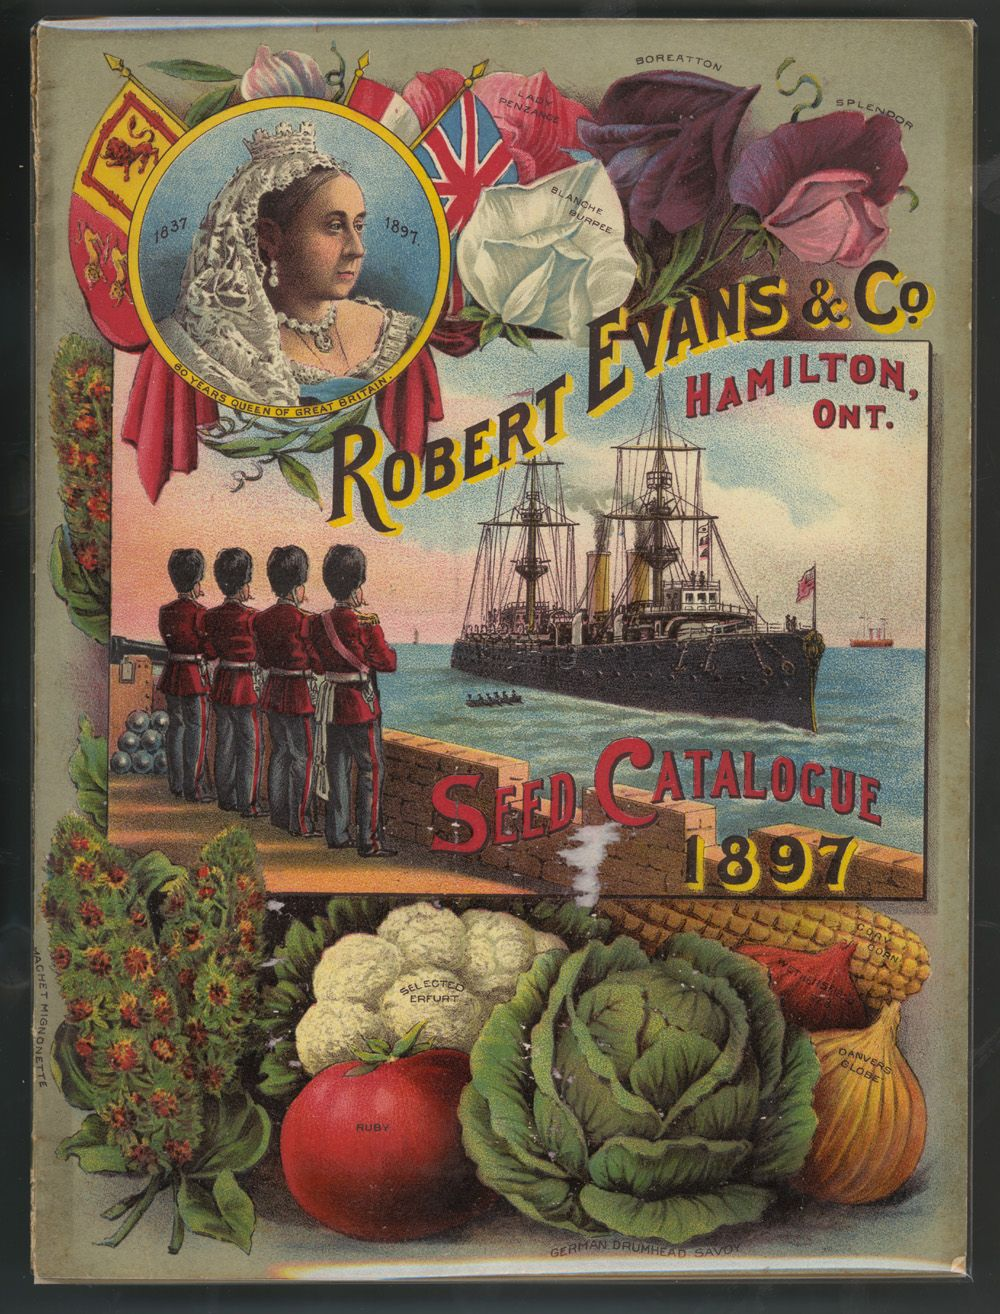 Adventures Of The Blackgang Seed Catalogue 1897 Robert Evans